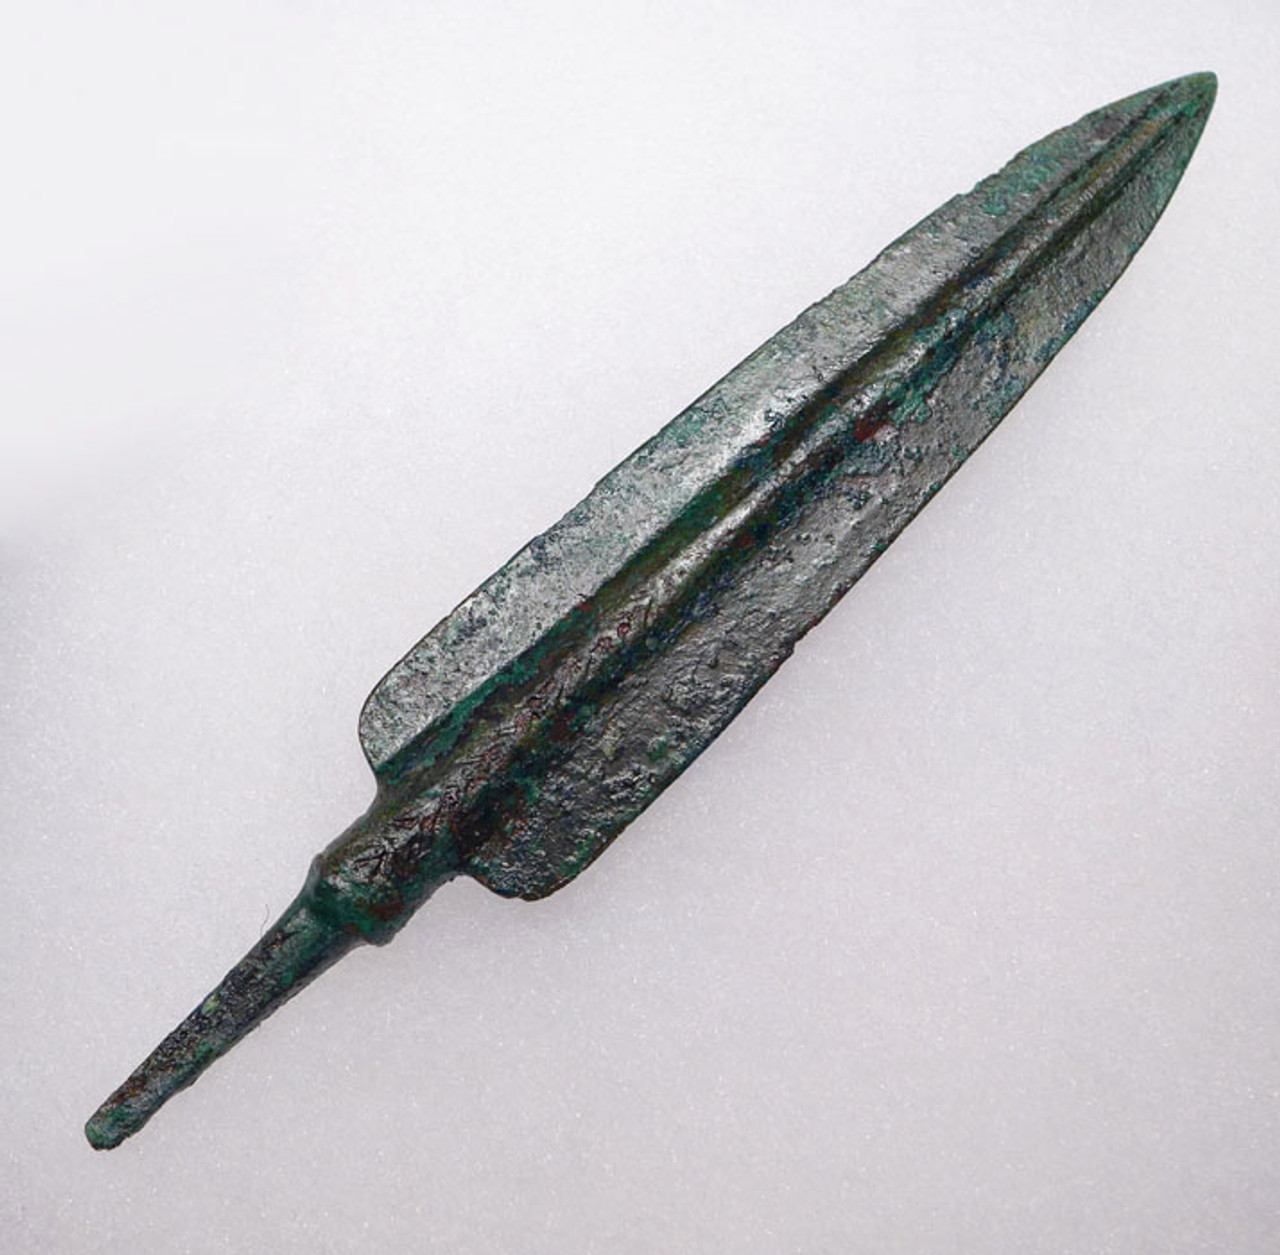 NEX003 - LARGE ANCIENT BRONZE LURISTAN TANGED ARROWHEAD WITH RARE INCISED DECORATION